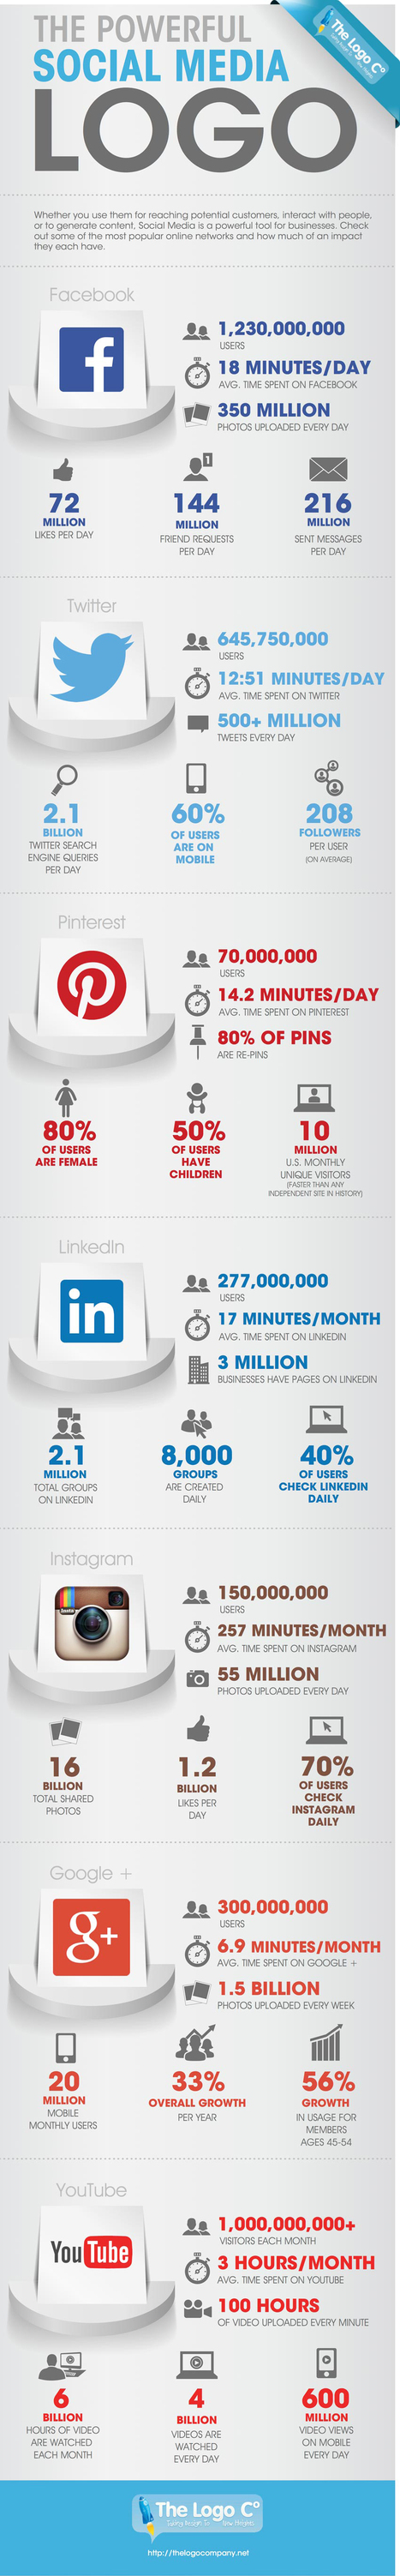 2014: The Numbers Behind Social Media [infographic] | Attractum | Scoop.it